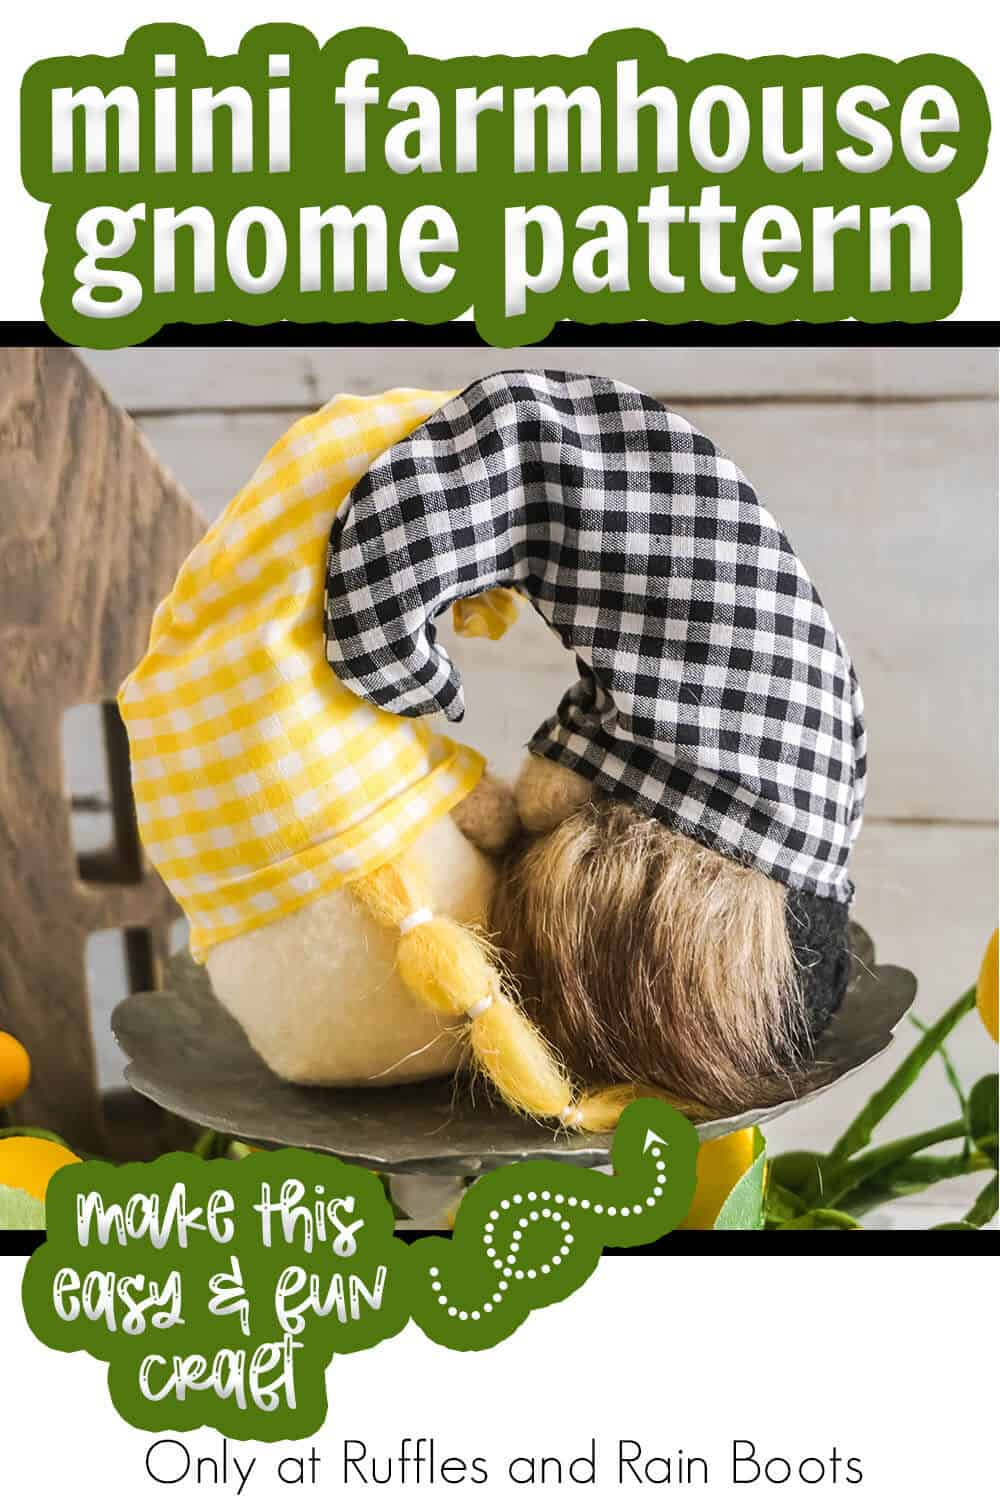 mini gnome pattern for farmhouse gnomes with text which reads mini farmhouse gnome pattern make this easy & fun craft